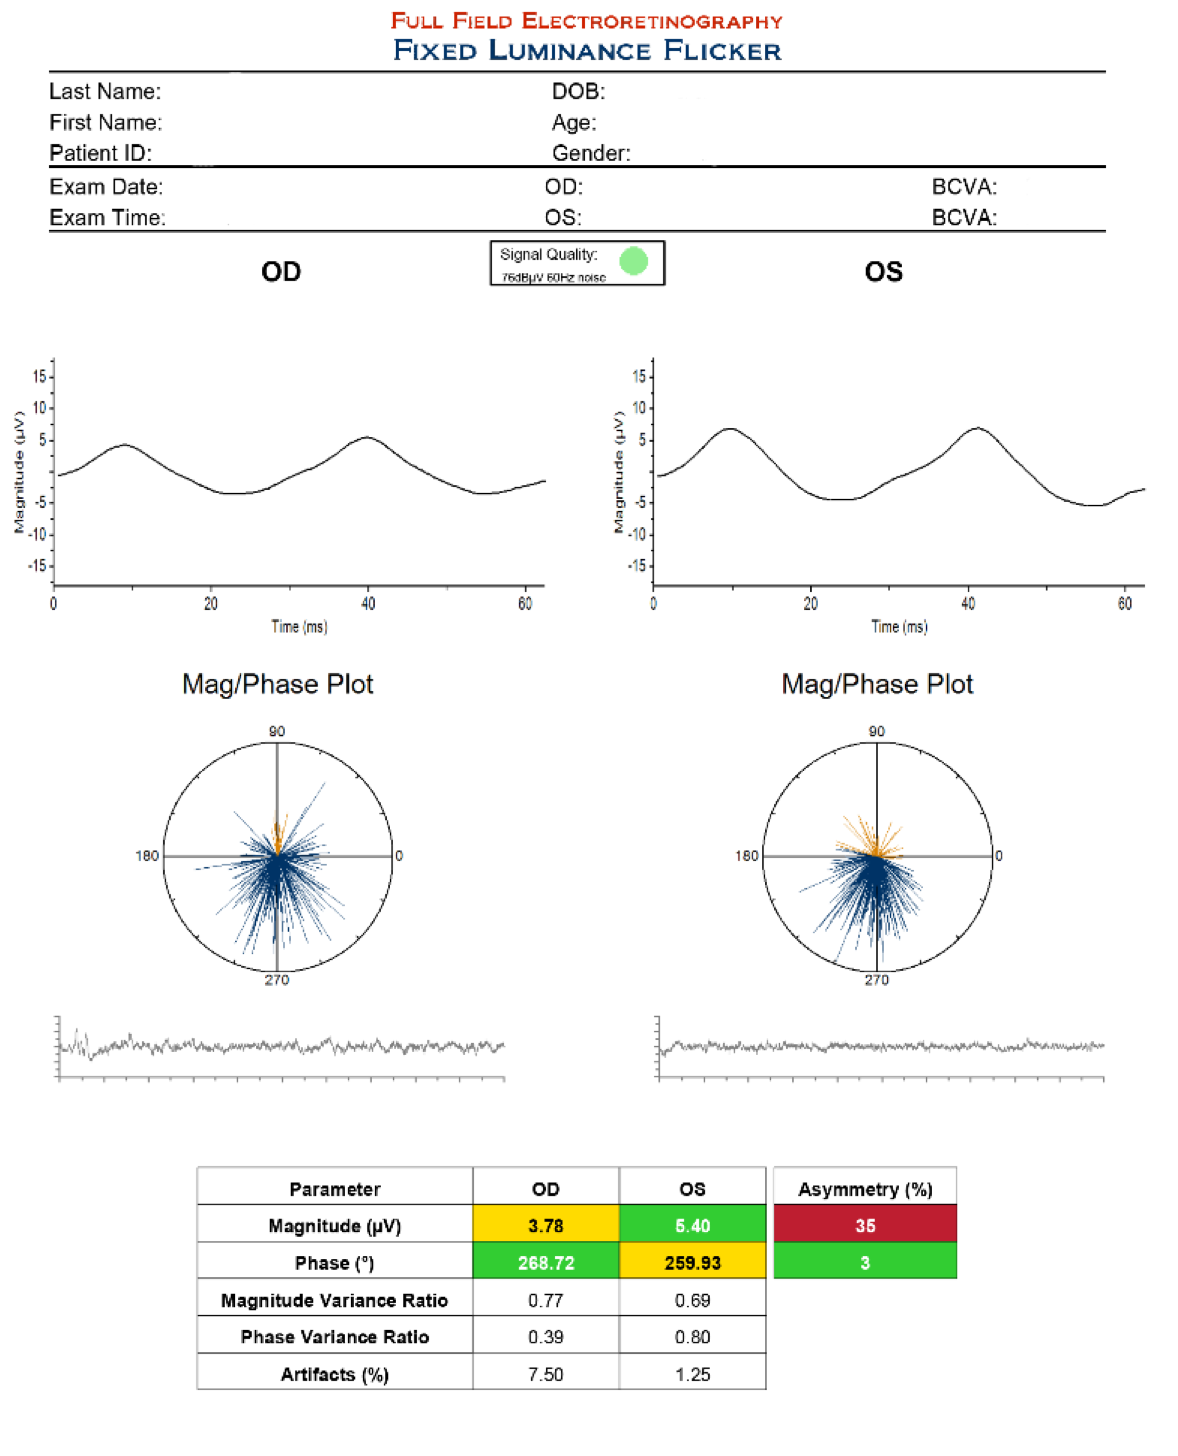 This ffERG with fixed luminance shows reduced magnitude values in both eyes, with the right worse than the left. The left eye has a low normal value (normal values are greater than 5.1). The mag/phase plot shows inconsistent scattered responses over all four quadrants (normal responses should be tightly packed together, showing good consistency in the bottom right quadrant).